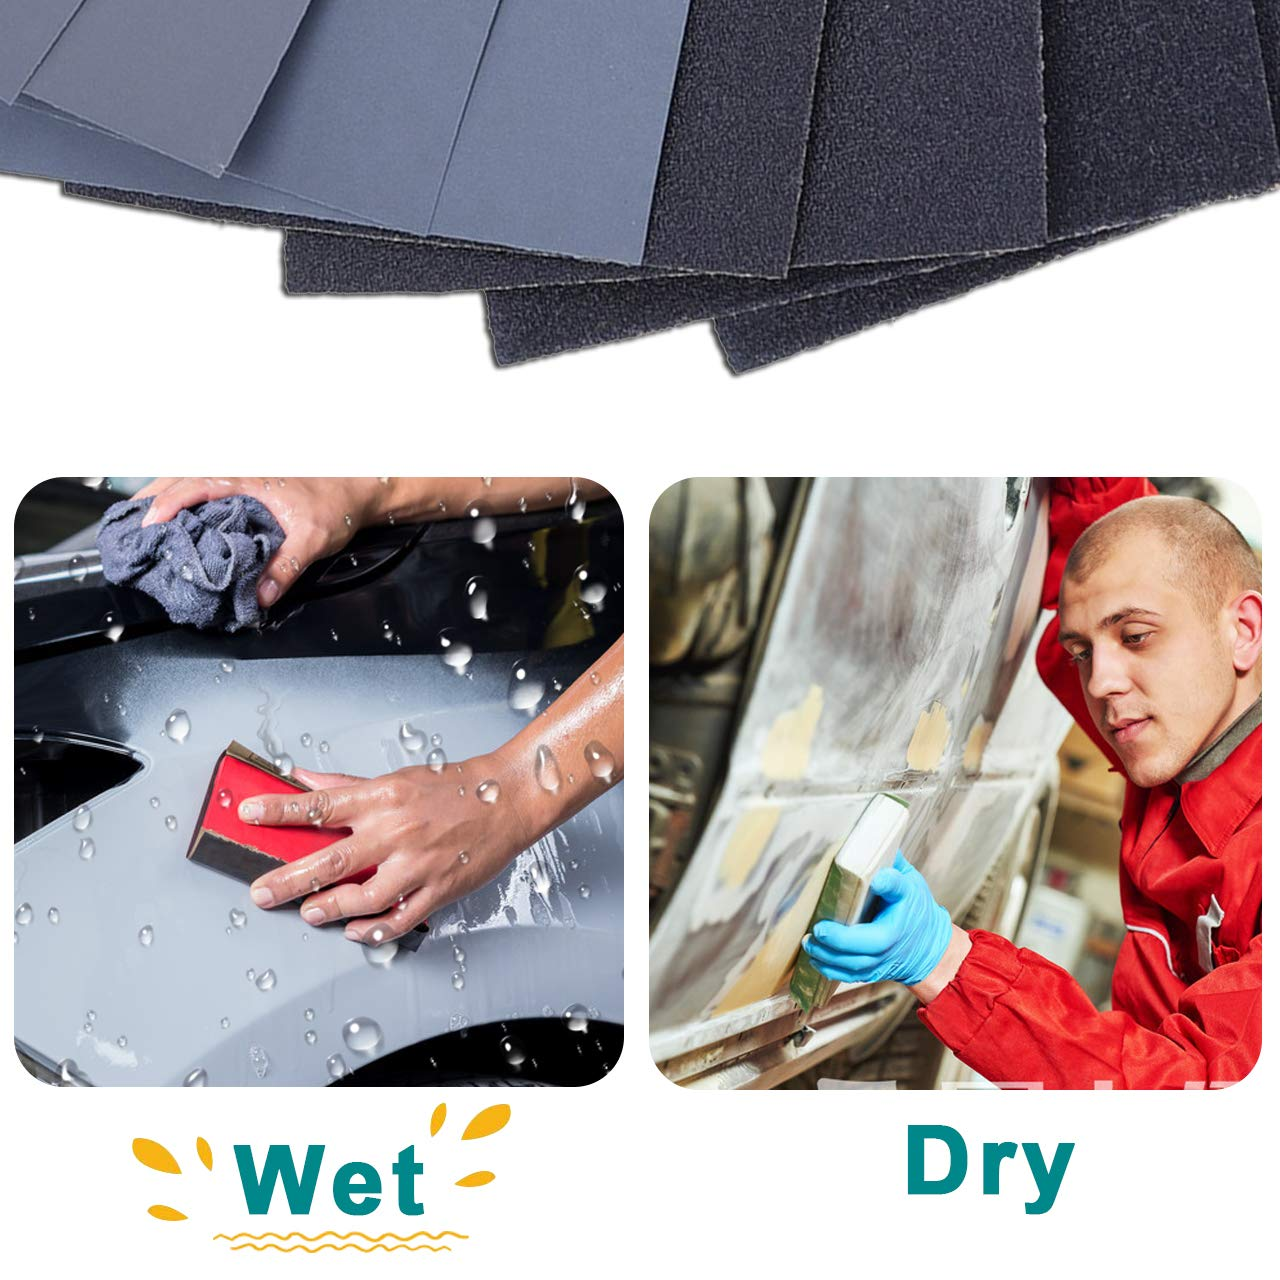 Sand paper 9 x 3.6 Inches. Metal Sanding and Automotive Polishing Premium Wet Dry Waterproof Sandpaper 48PCS 120 to 3000 Assorted Grit Sanding Paper for Wood Furniture Finishing